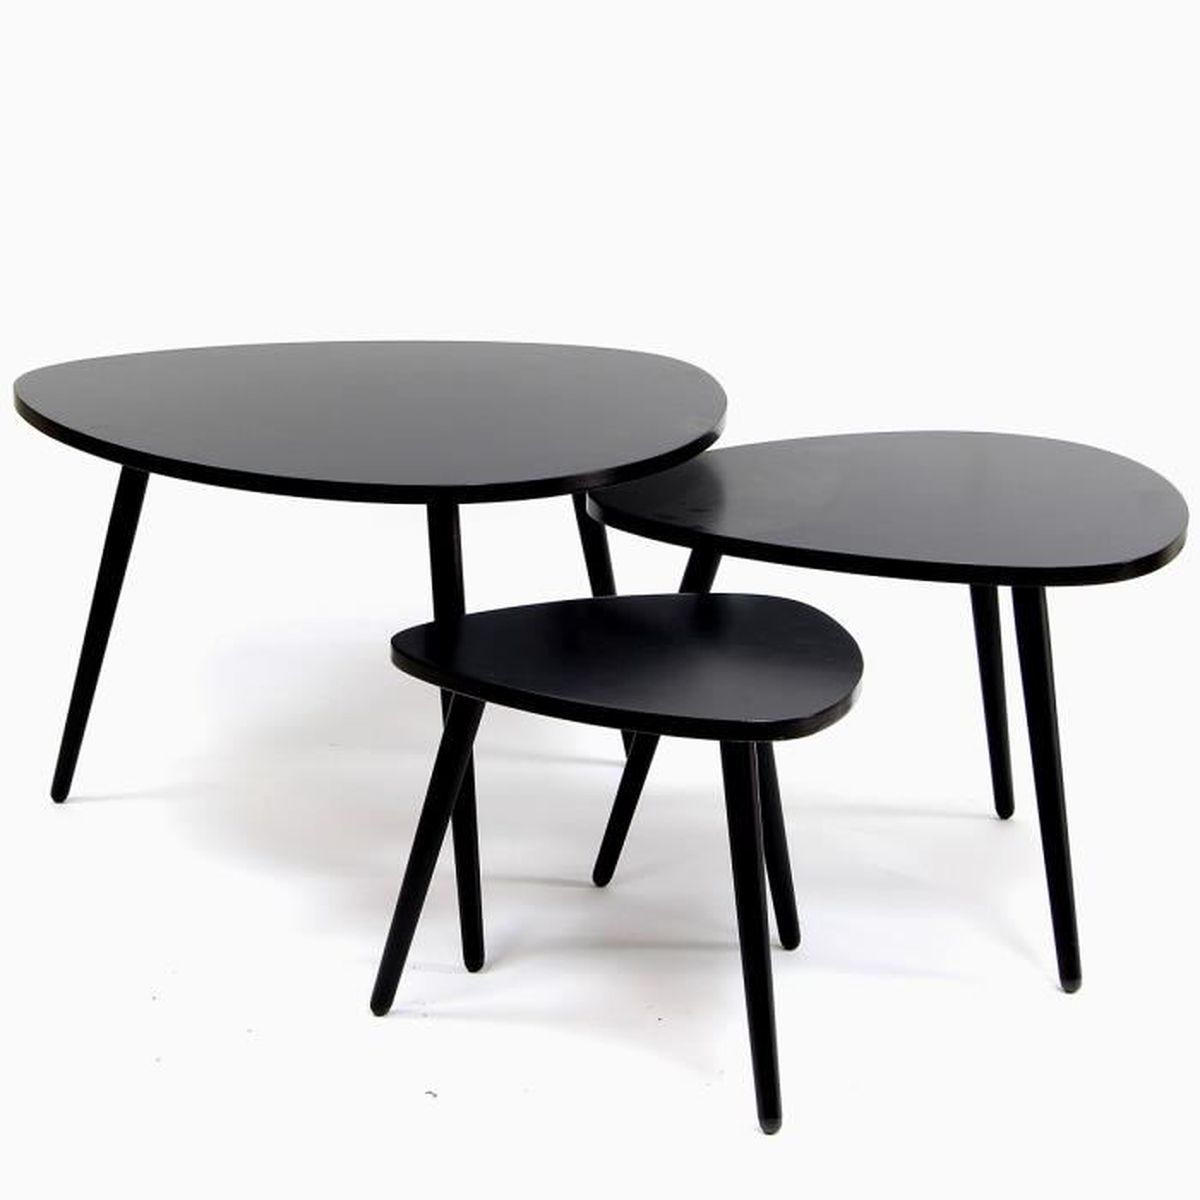 table gigogne forme galet set de 3 couleur noire achat vente table basse table gigogne. Black Bedroom Furniture Sets. Home Design Ideas